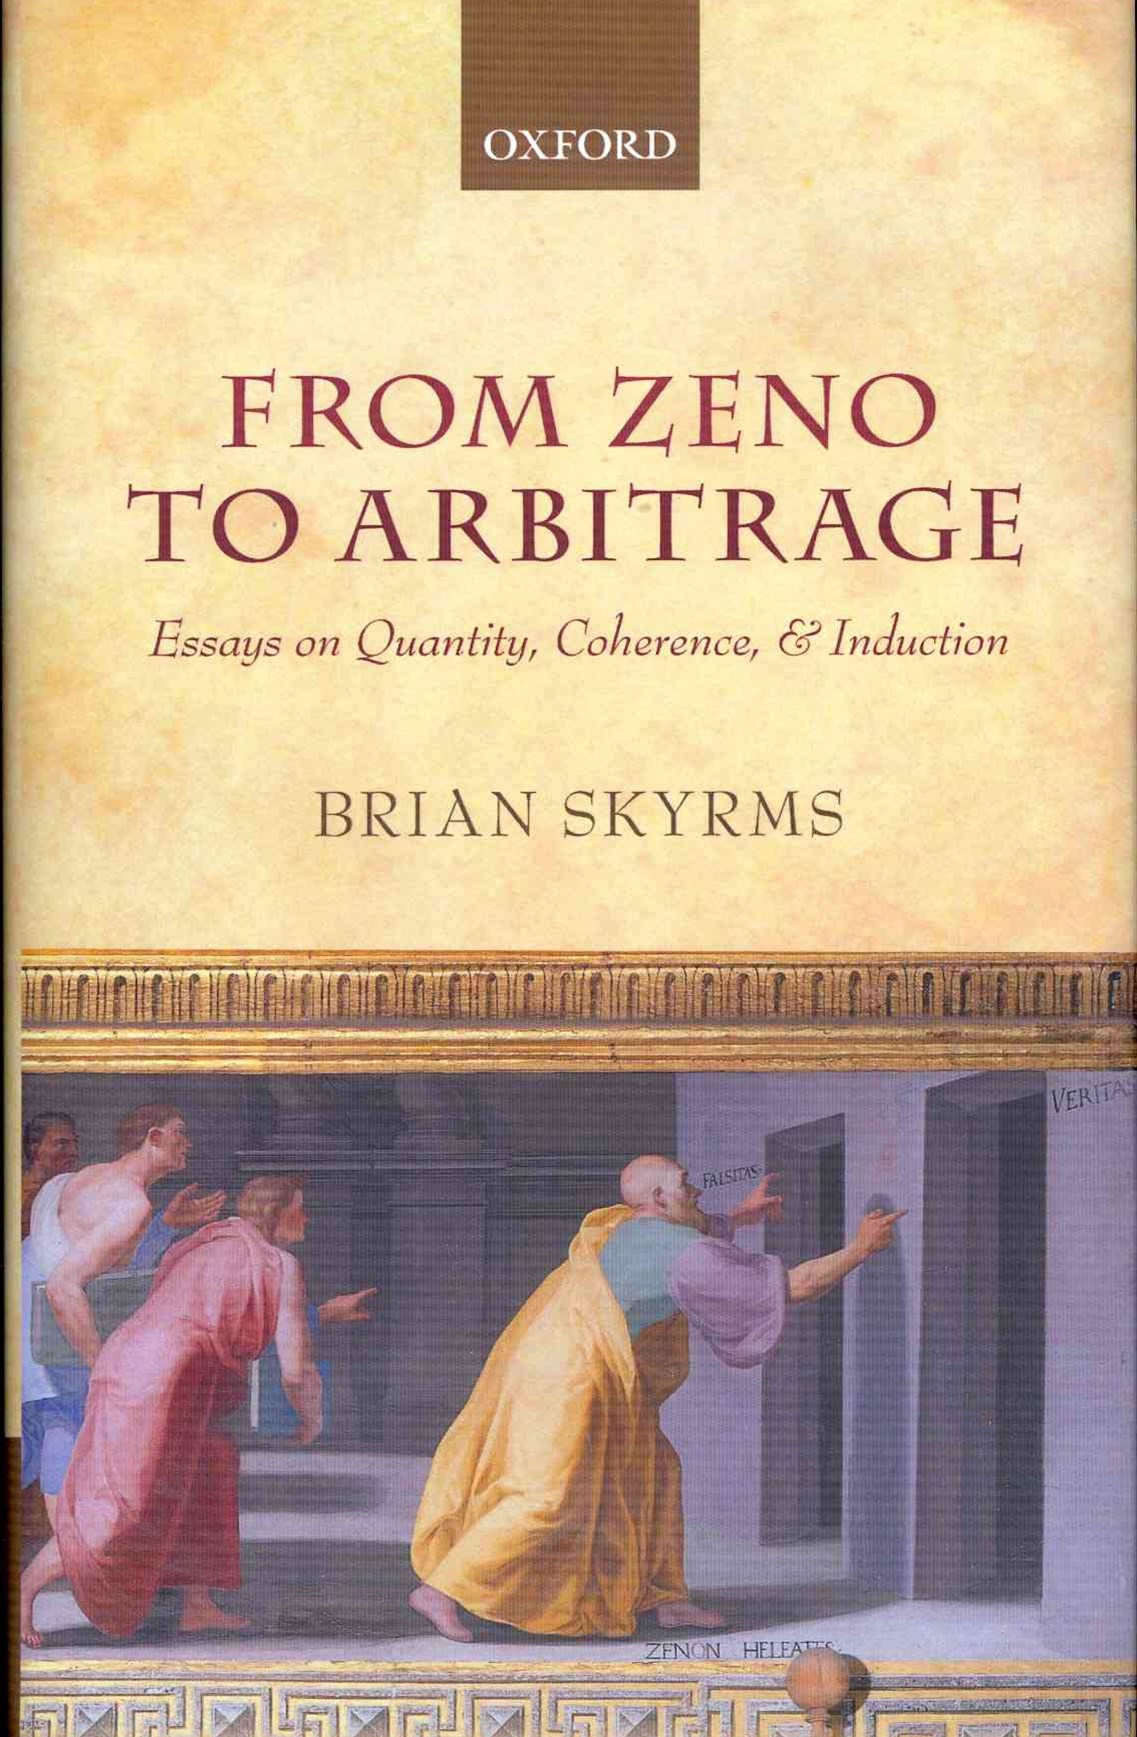 From Zeno to Arbitrage